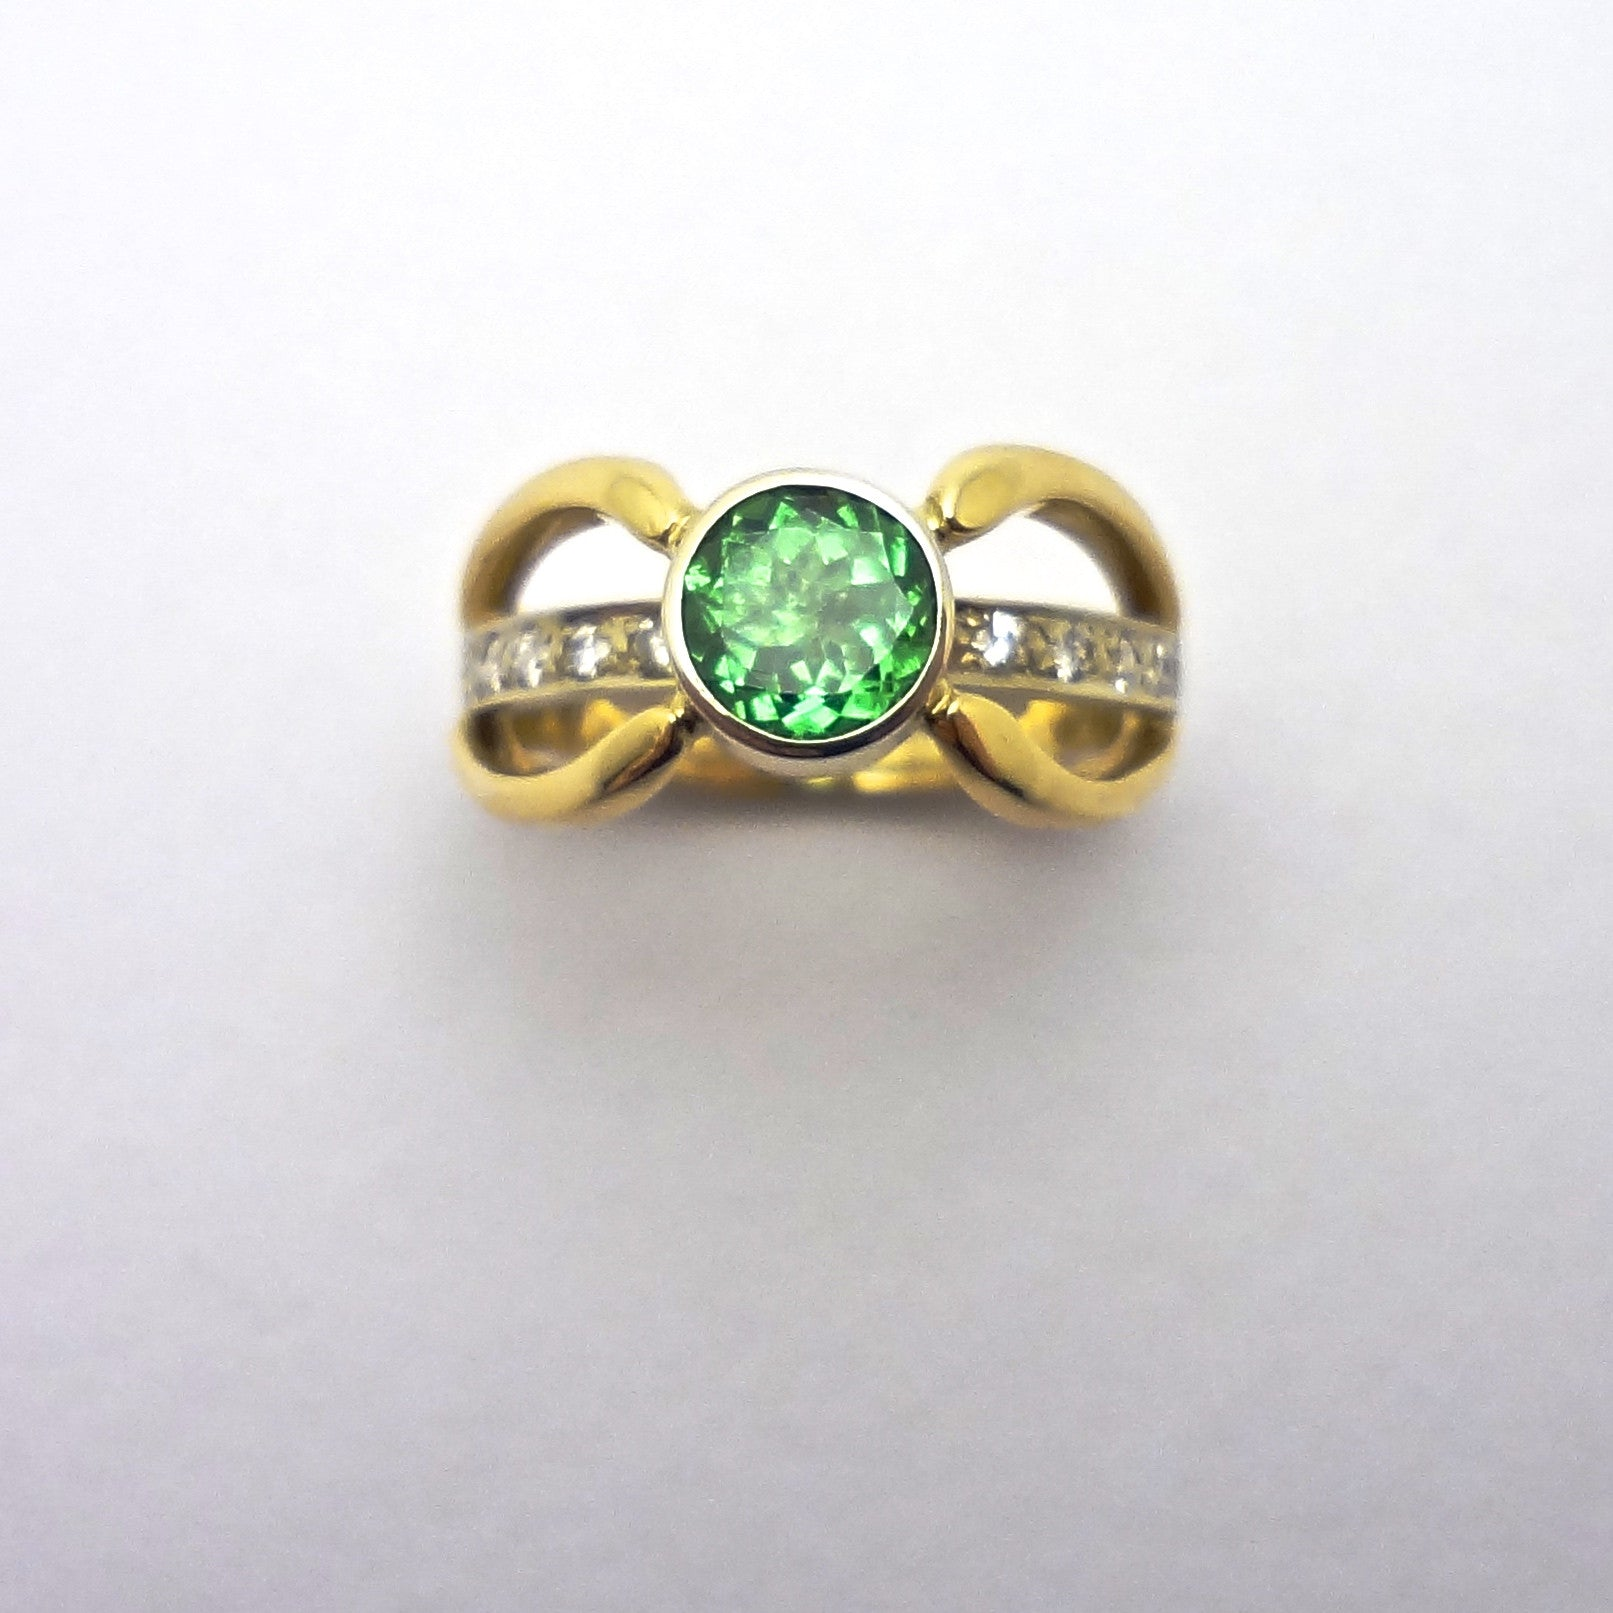 image garnet product collections high tsavorite ring thalia rings jewellery